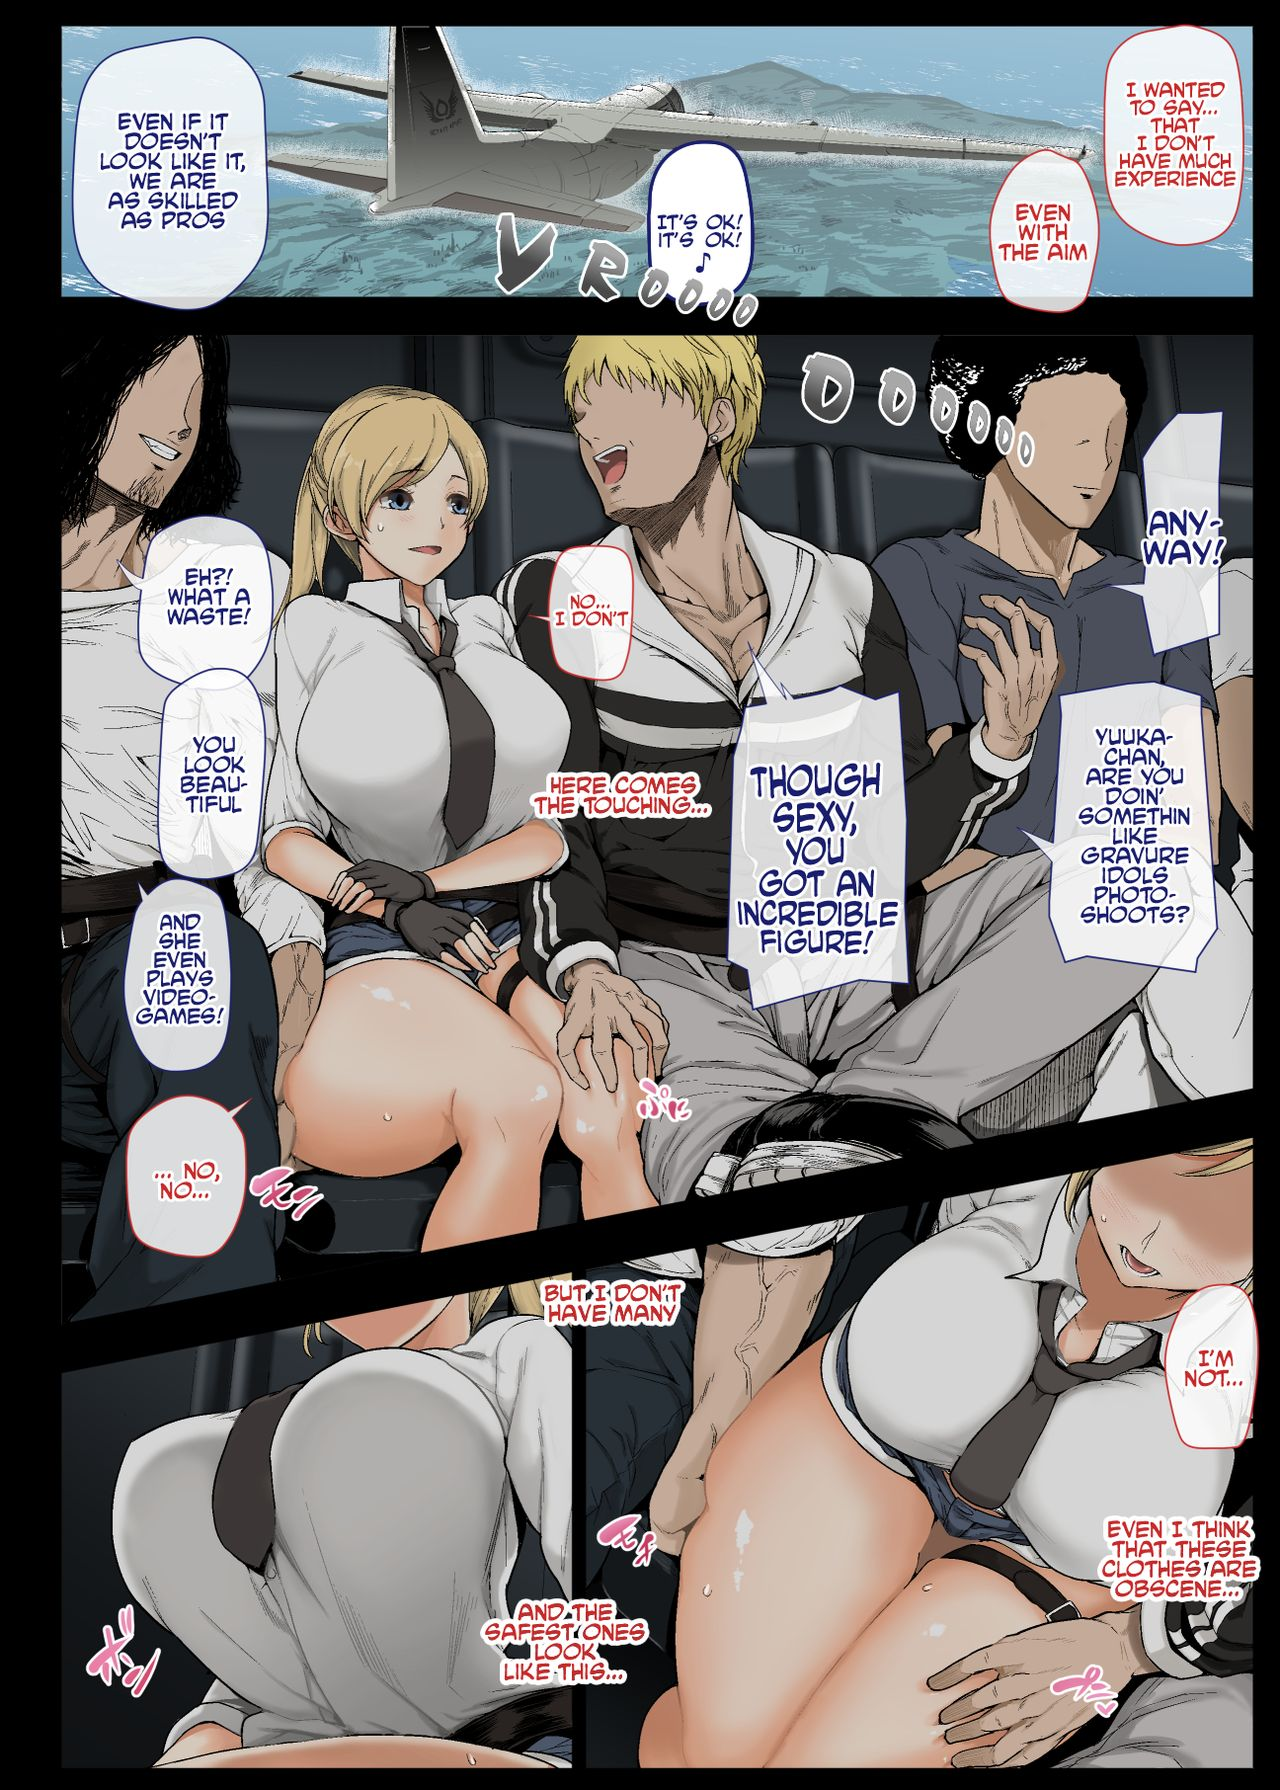 004 - Battlegrounds - Indecent win with a female college student.